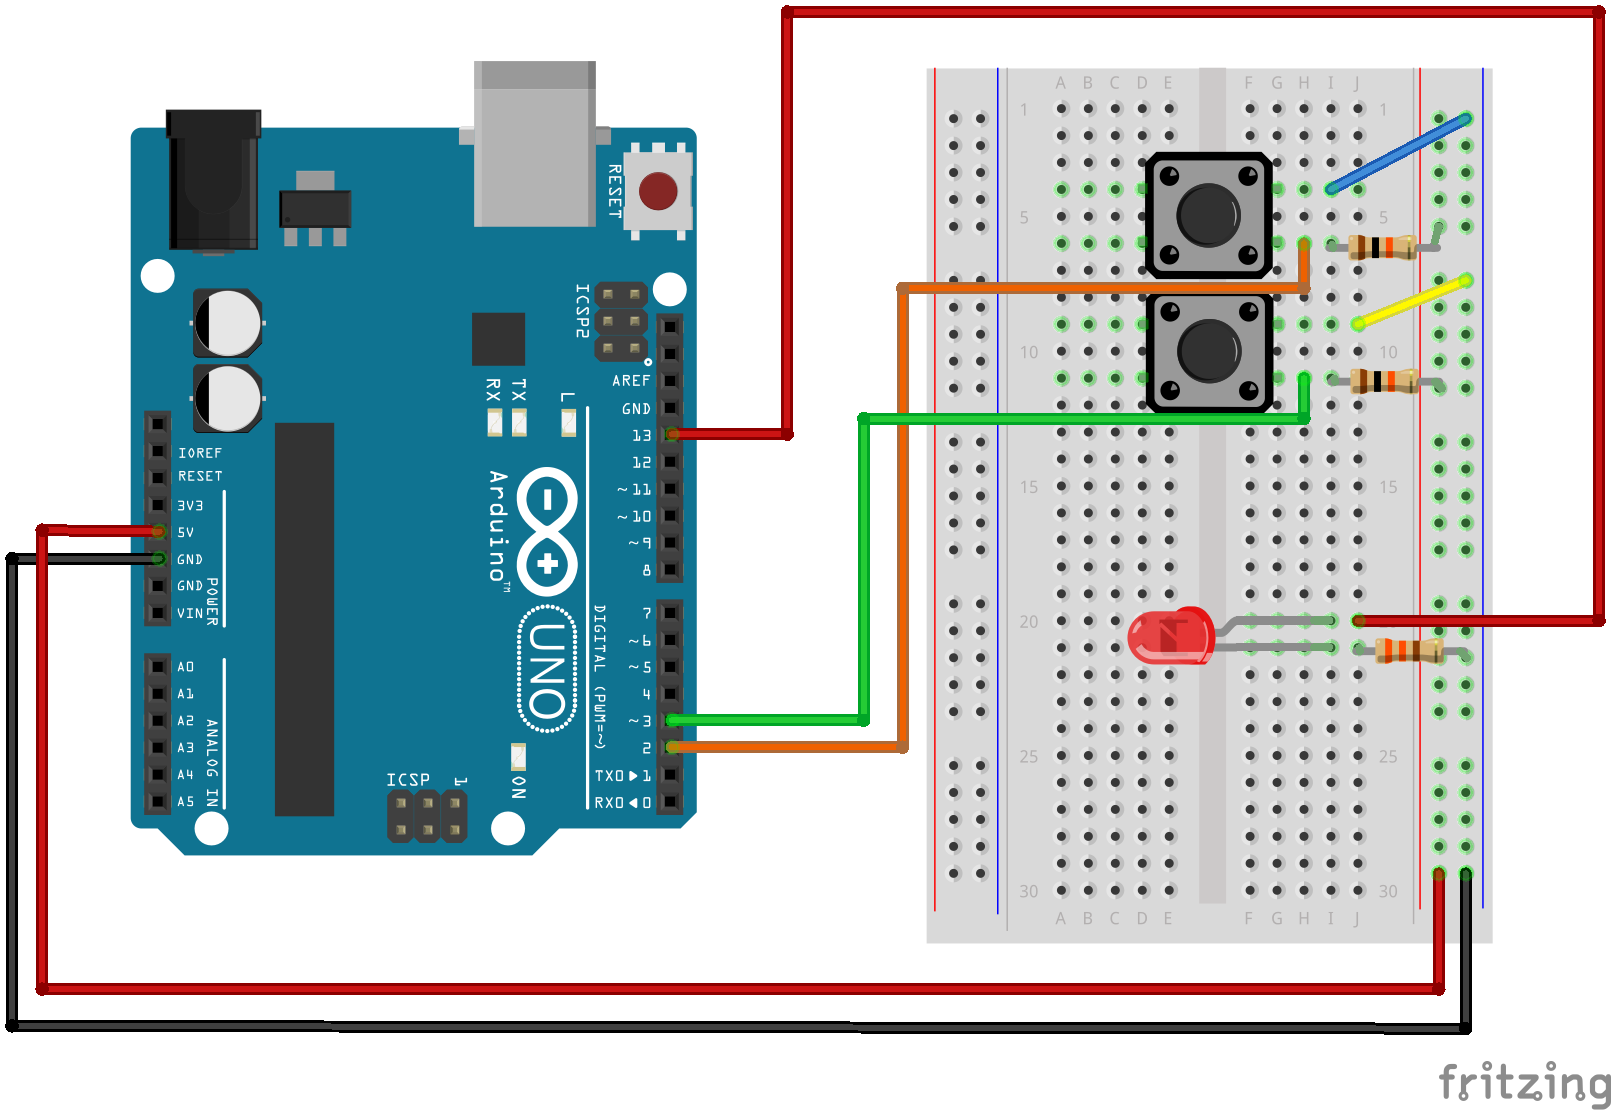 Sik Experiment Guide For Arduino V32 Likewise Led Driver Circuit Diagram Besides White Having A Hard Time Seeing The Click On Fritzing To See Bigger Image